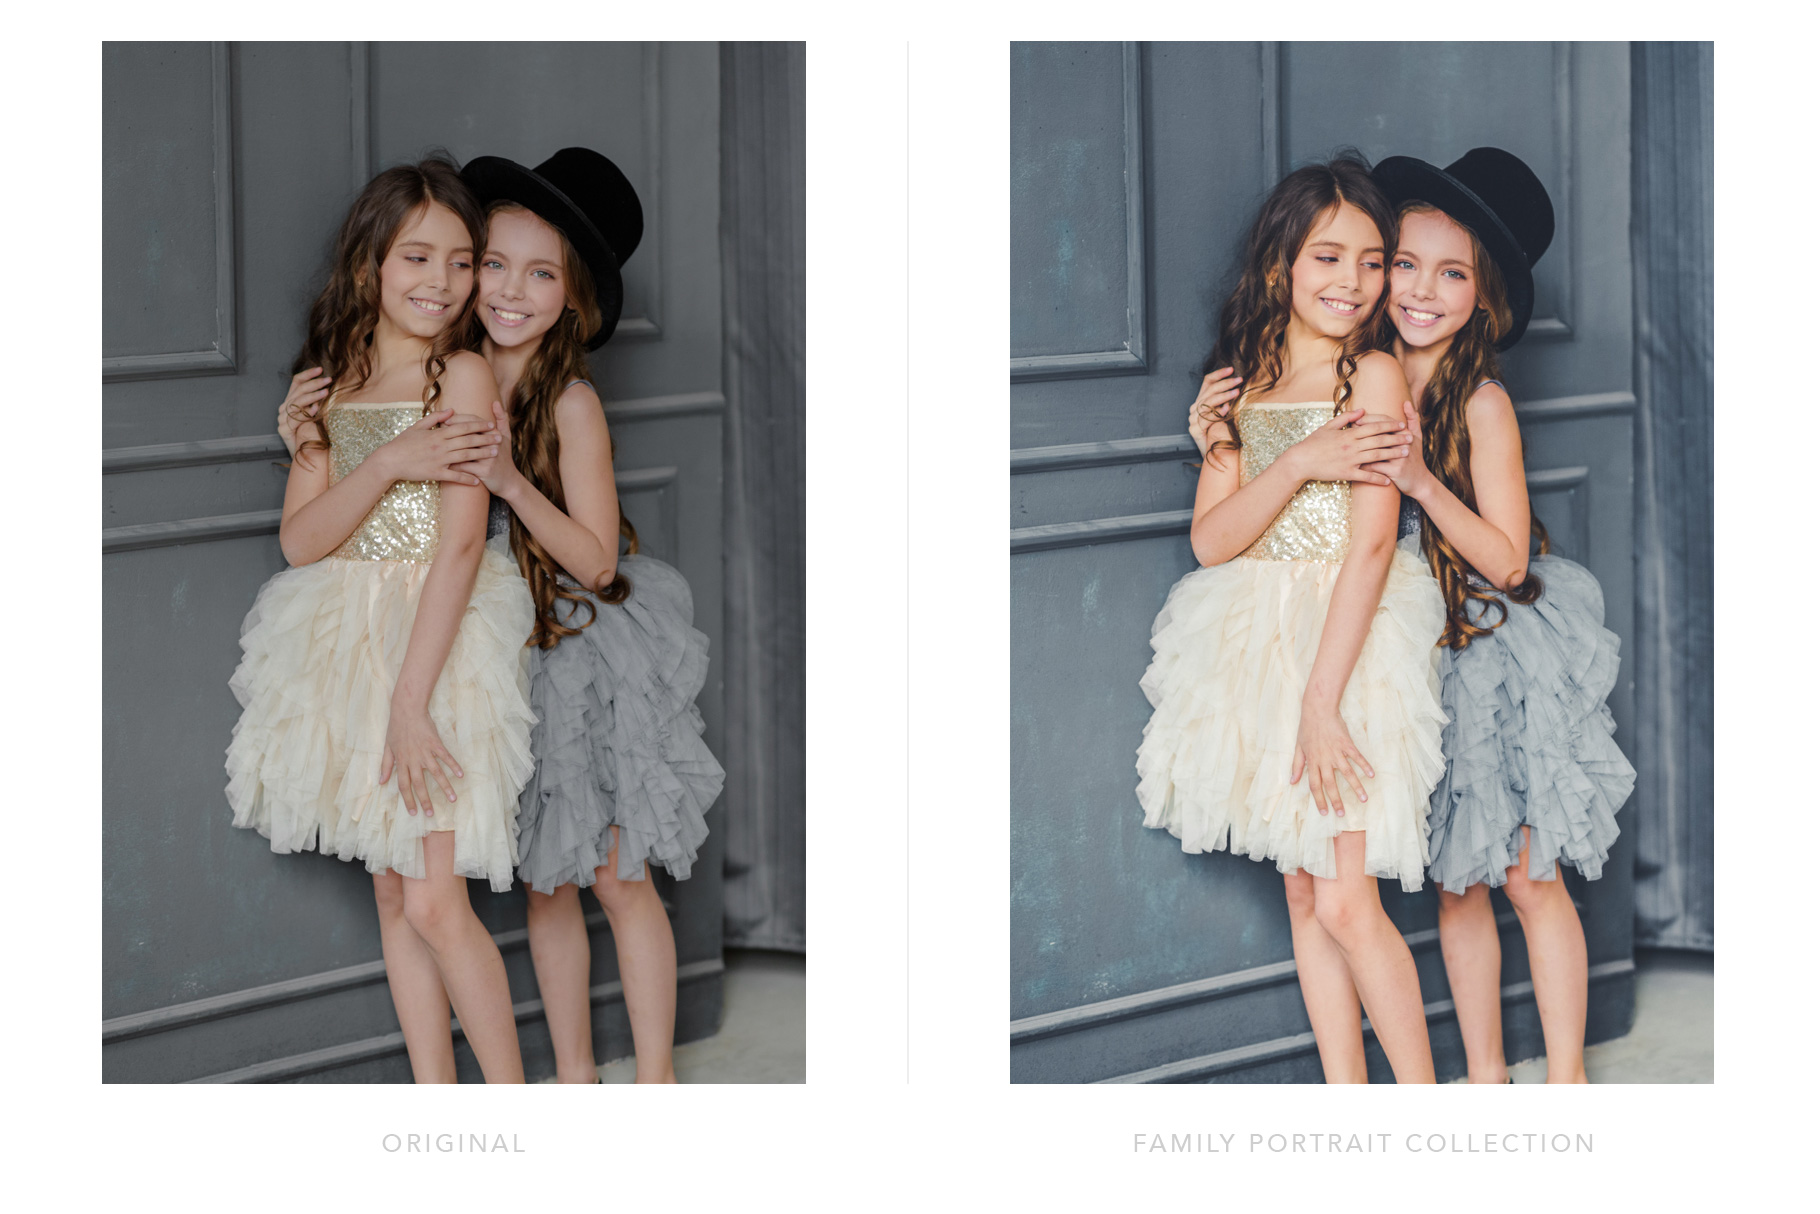 Children and family lightroom presets, photoshop actions and acr presets